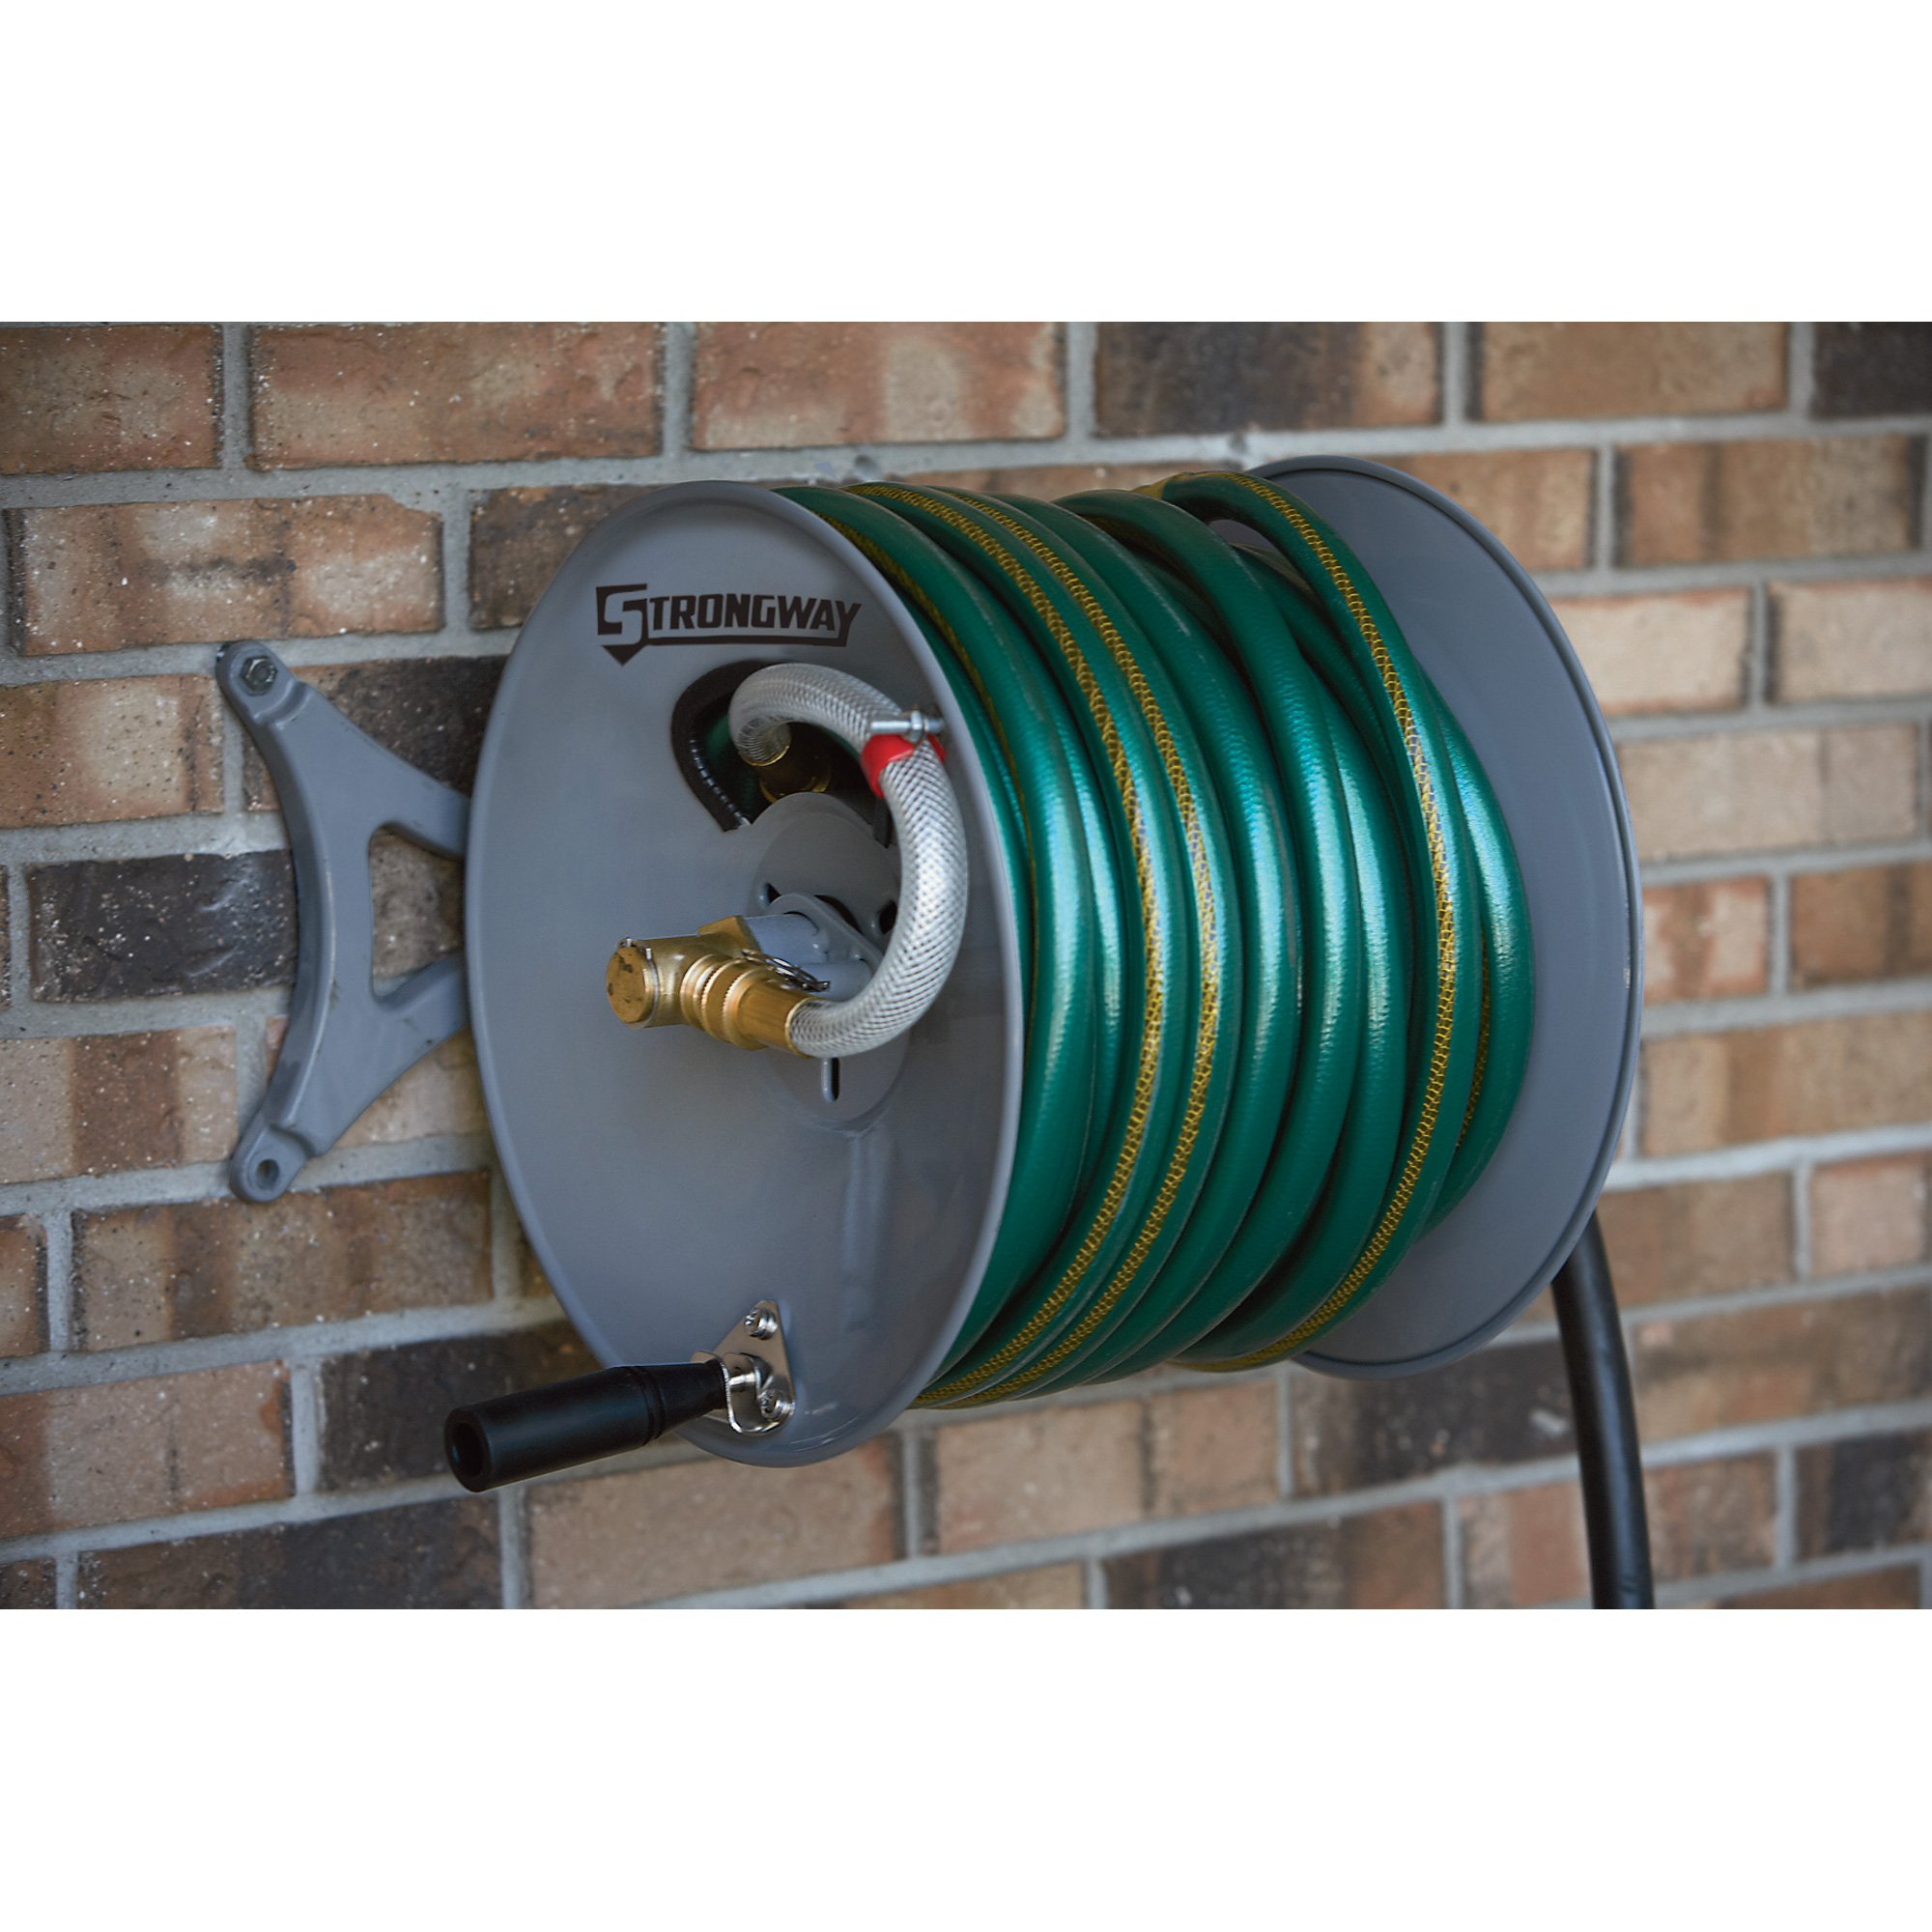 Strongway Parallel or Perpendicular Wall-Mount Garden Hose Reel - Holds 5/8in. x 150ft. Hose by Strongway